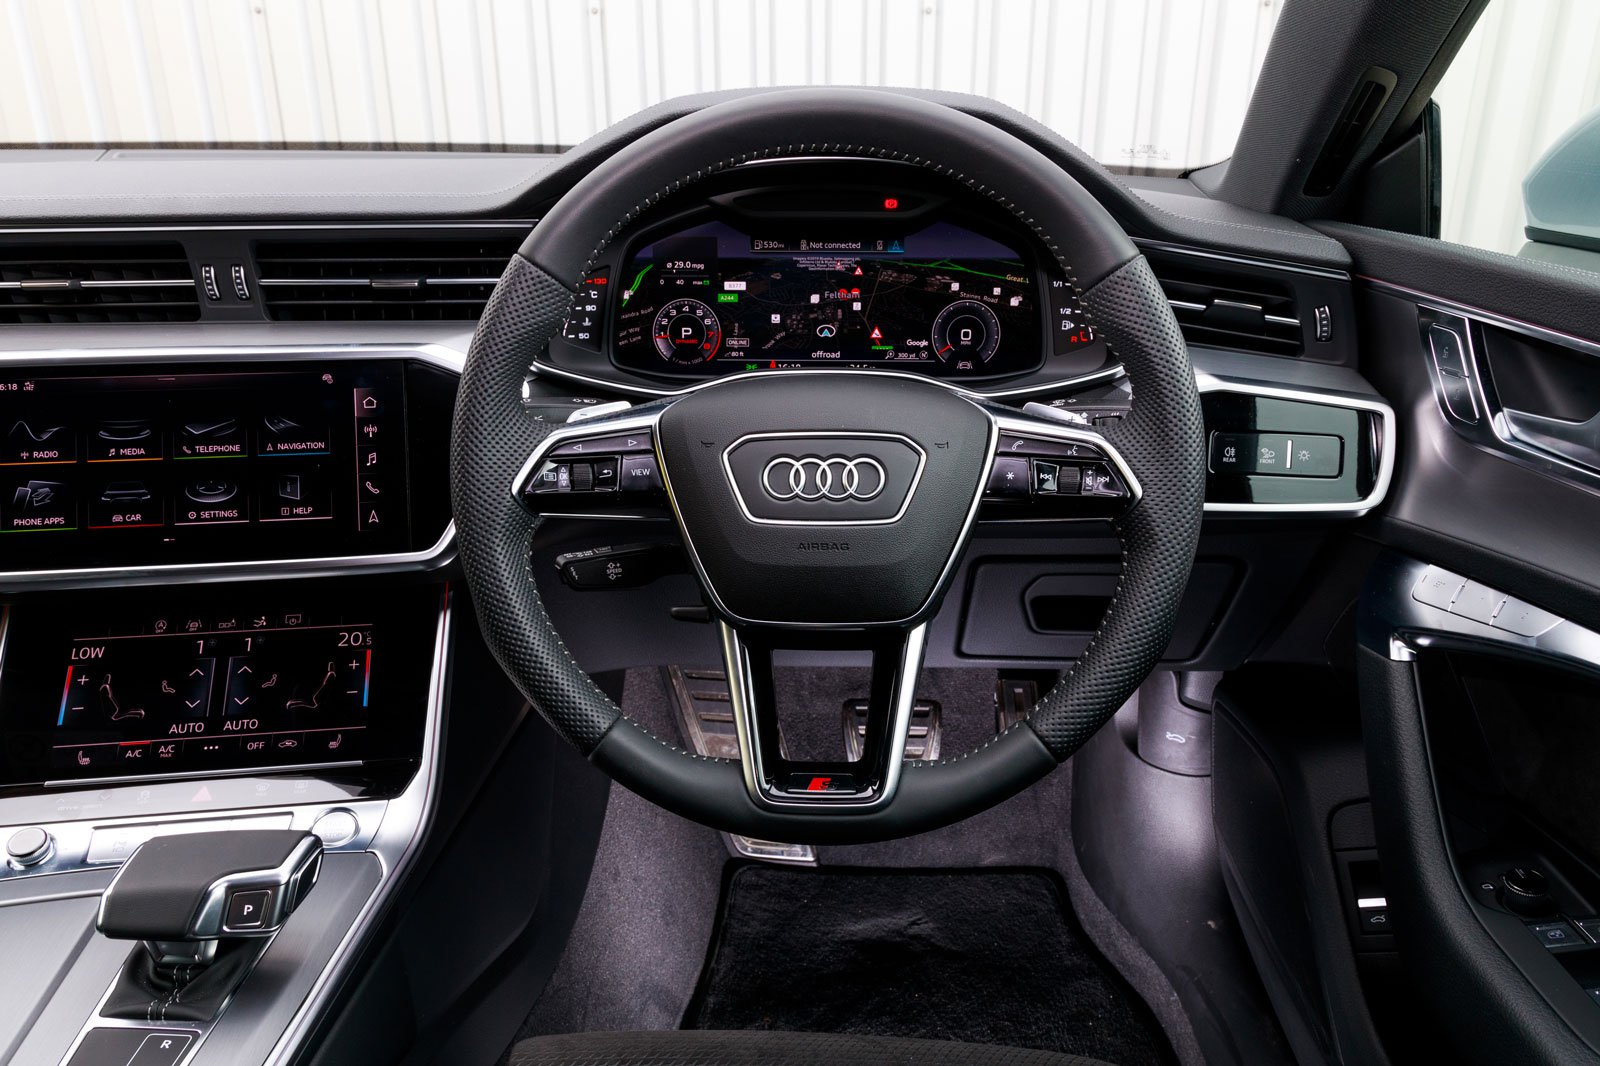 2019 audi a7 interior dashboard